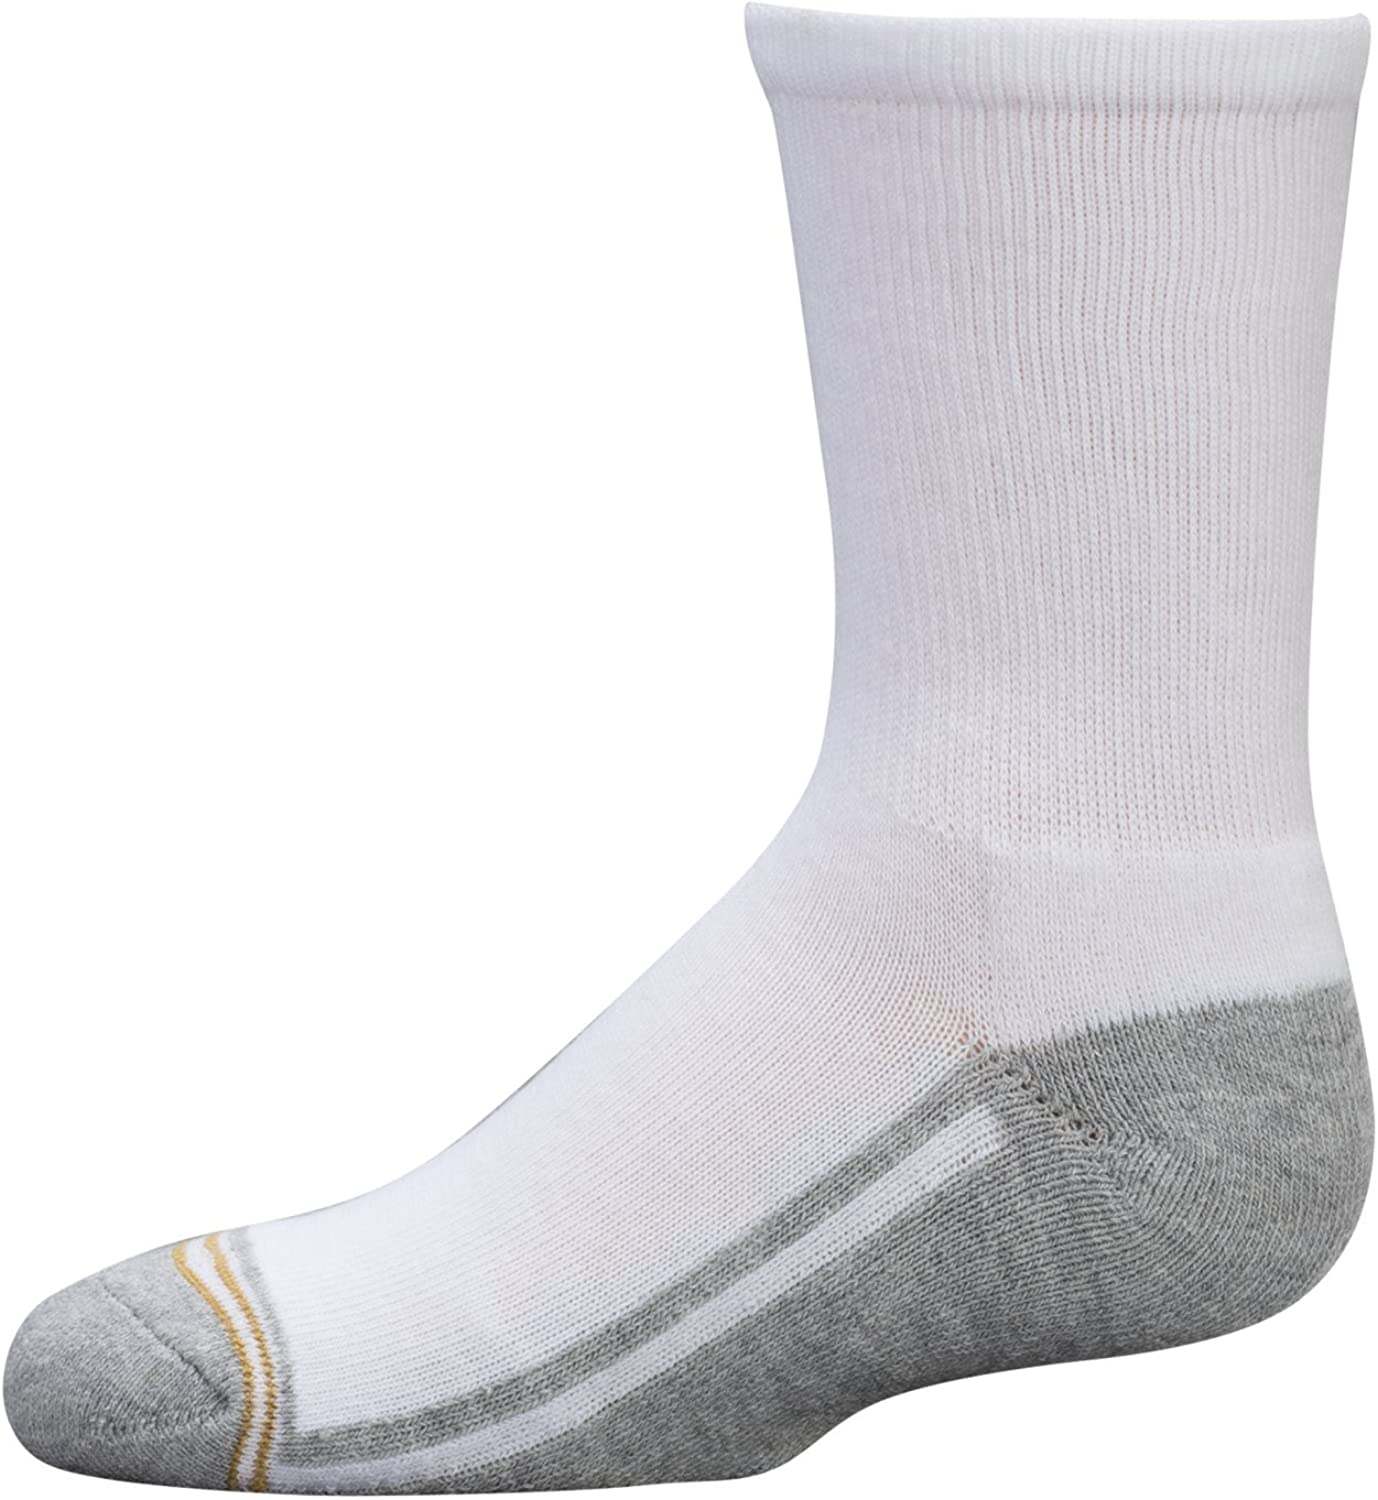 Gold Toe Big Boys' Athletic Crew Sock Six-Pack: Clothing